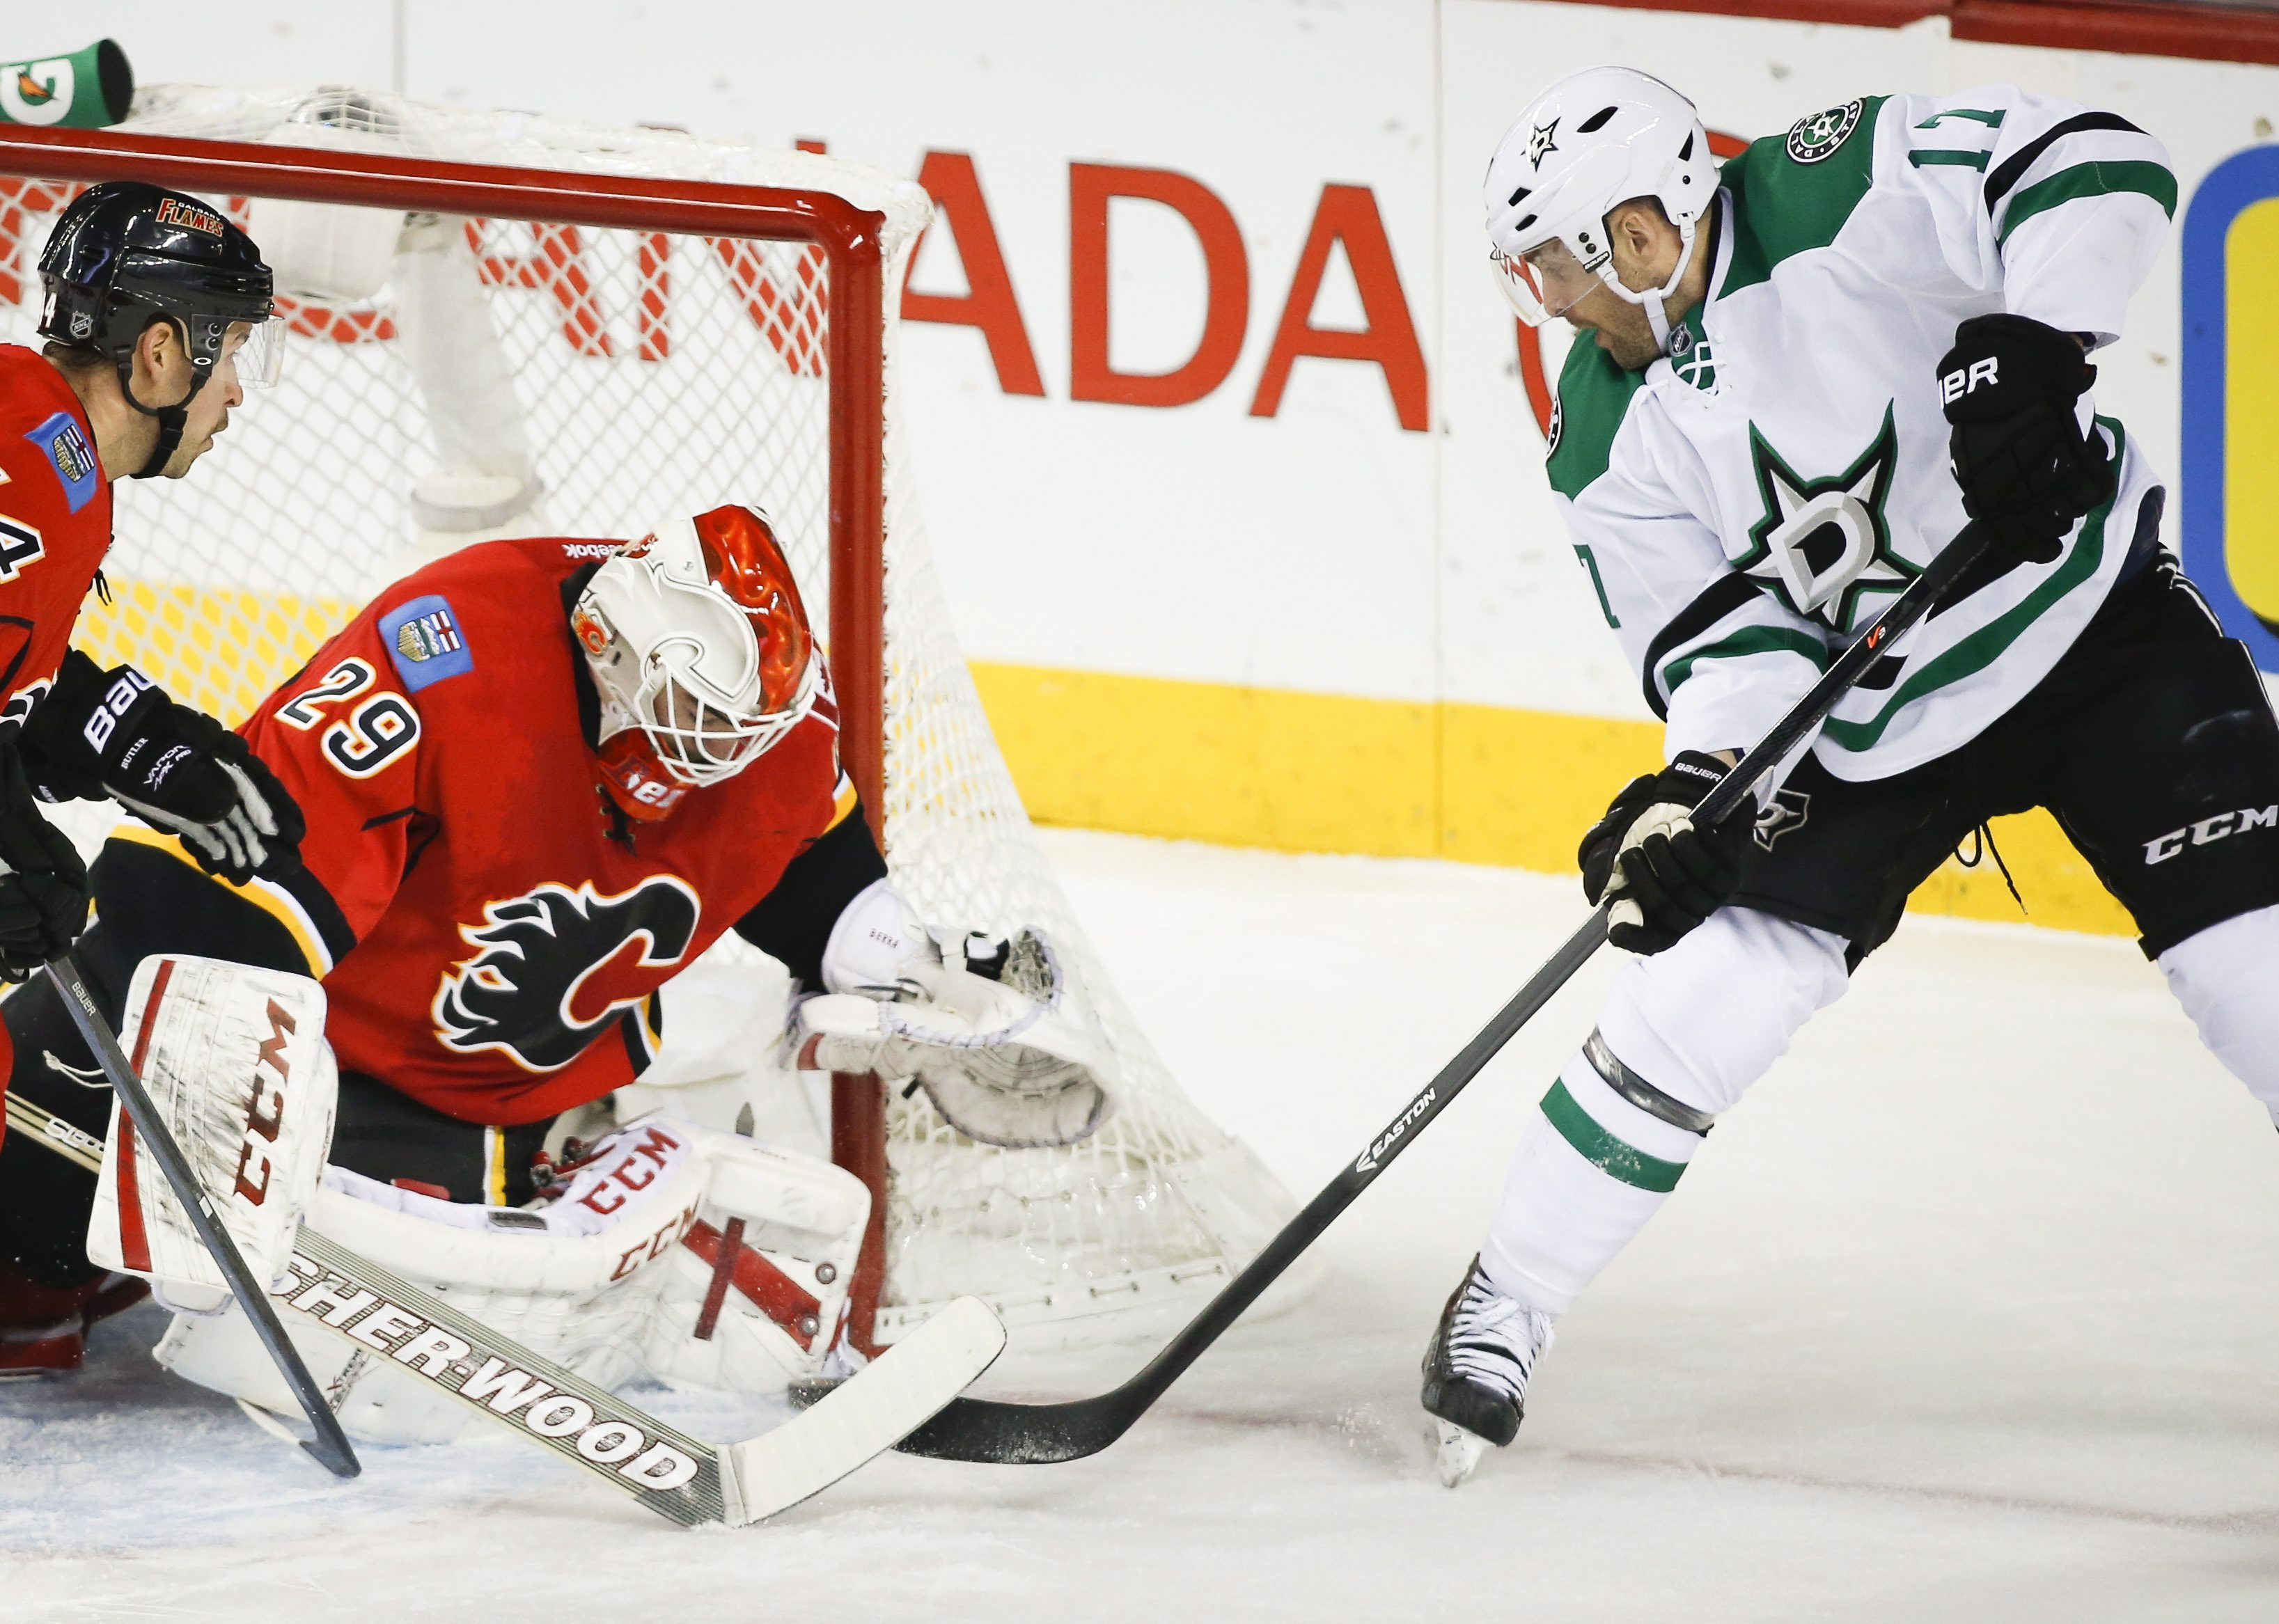 Dallas Stars' Rich Peverley, right, tries to get the puck past Calgary Flames goalie Reto Berra, from Switzerland, during first-period NHL hockey game action in Calgary, Alberta., Thursday, Nov. 14, 2013